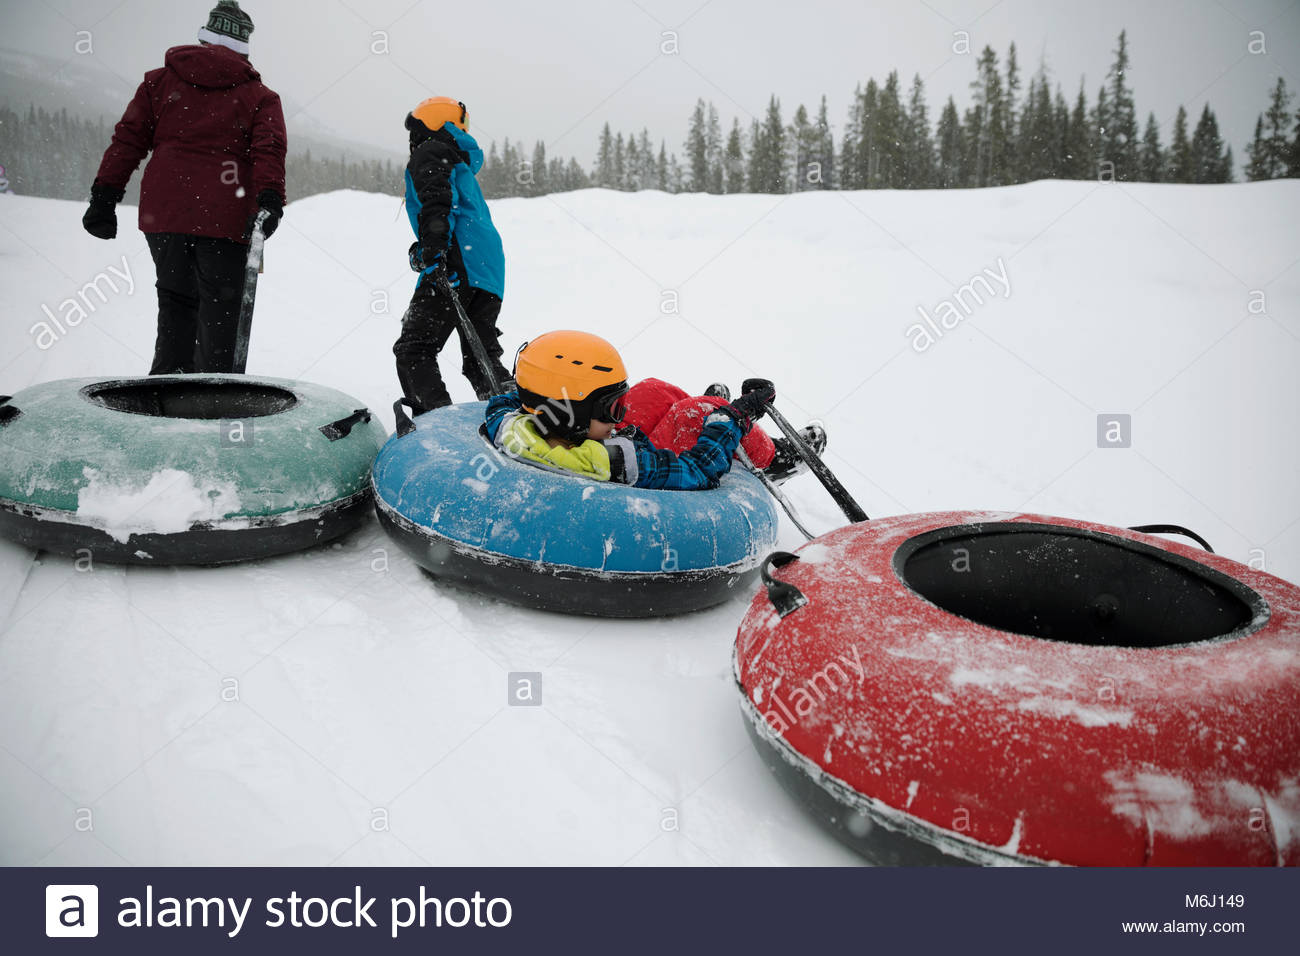 Boy pulling brother in inner tube in snow at tube park - Stock Image